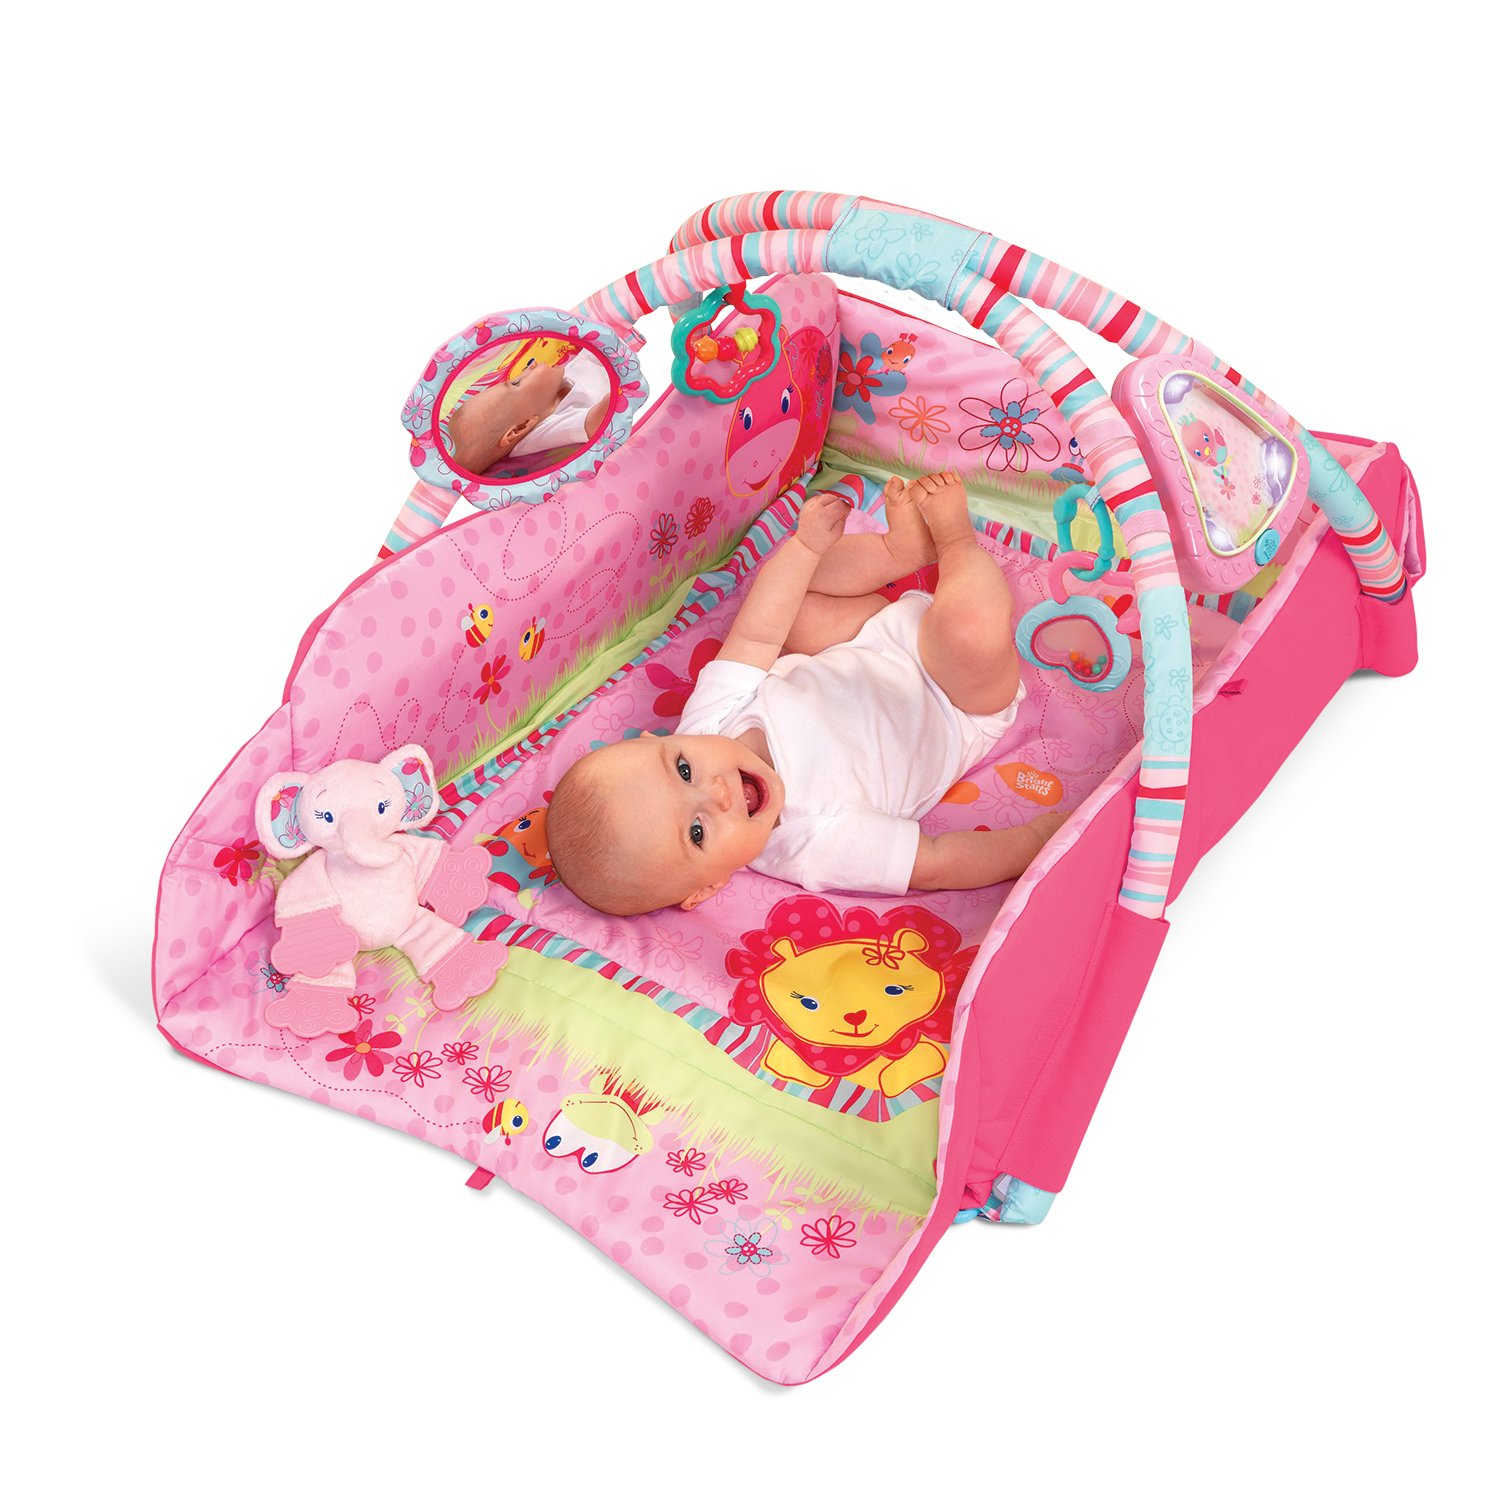 Bright Starts Pink Deluxe Baby Play Place Activity Gym New Nib